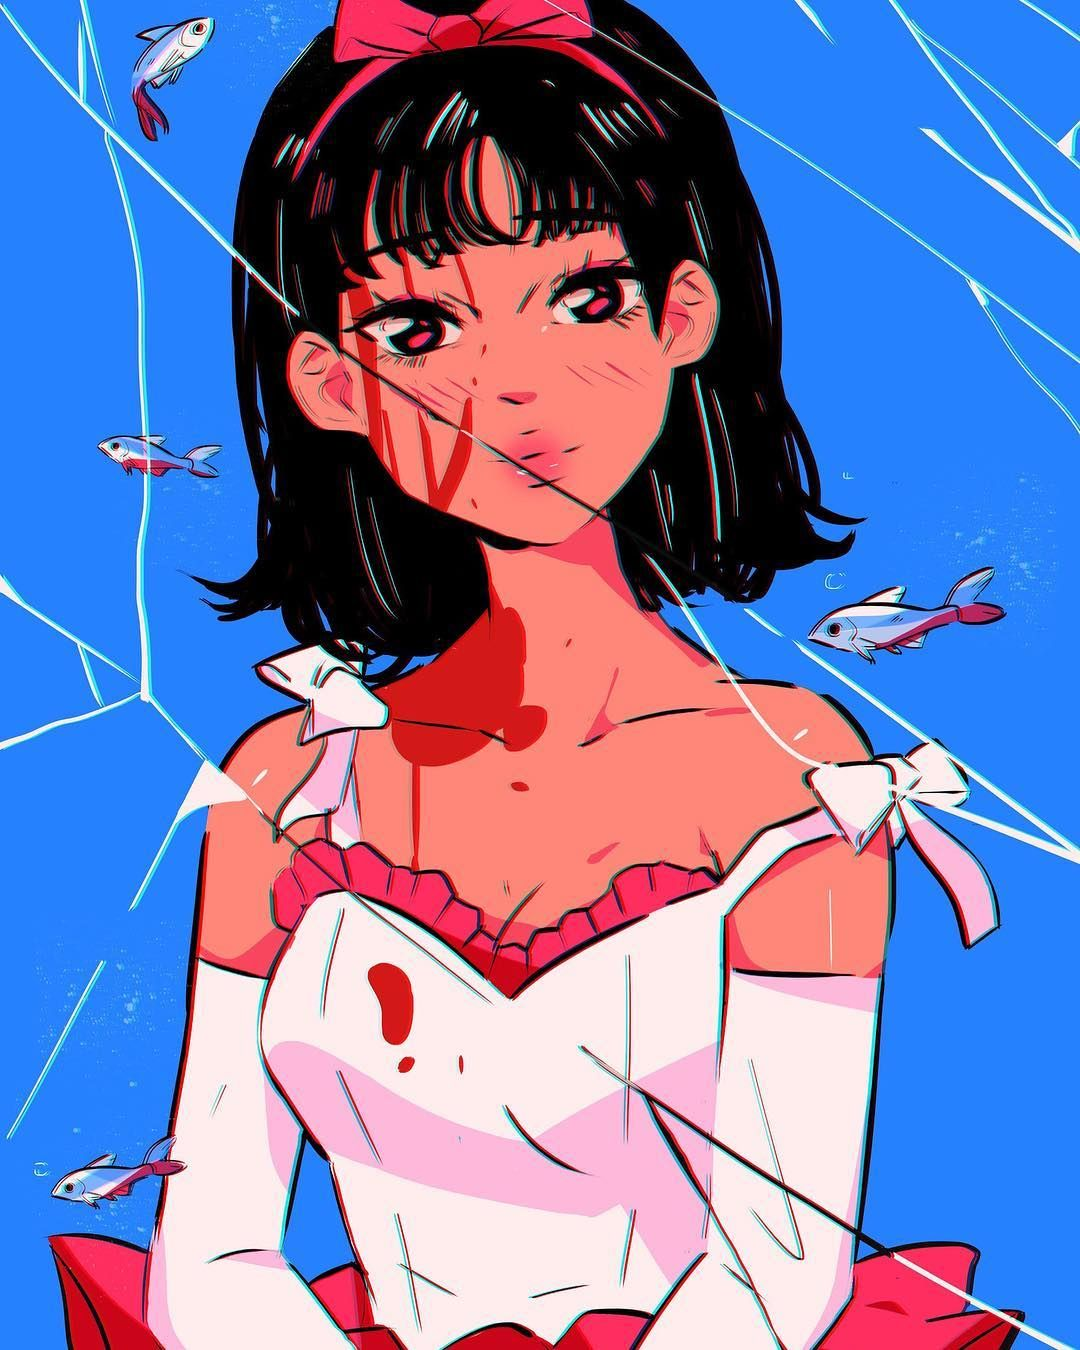 Stephanie On Instagram No I M The Real Thing Here S Mima From Perfect Blue Some Of You Guys Requested It Took Character Art Cute Art Aesthetic Anime